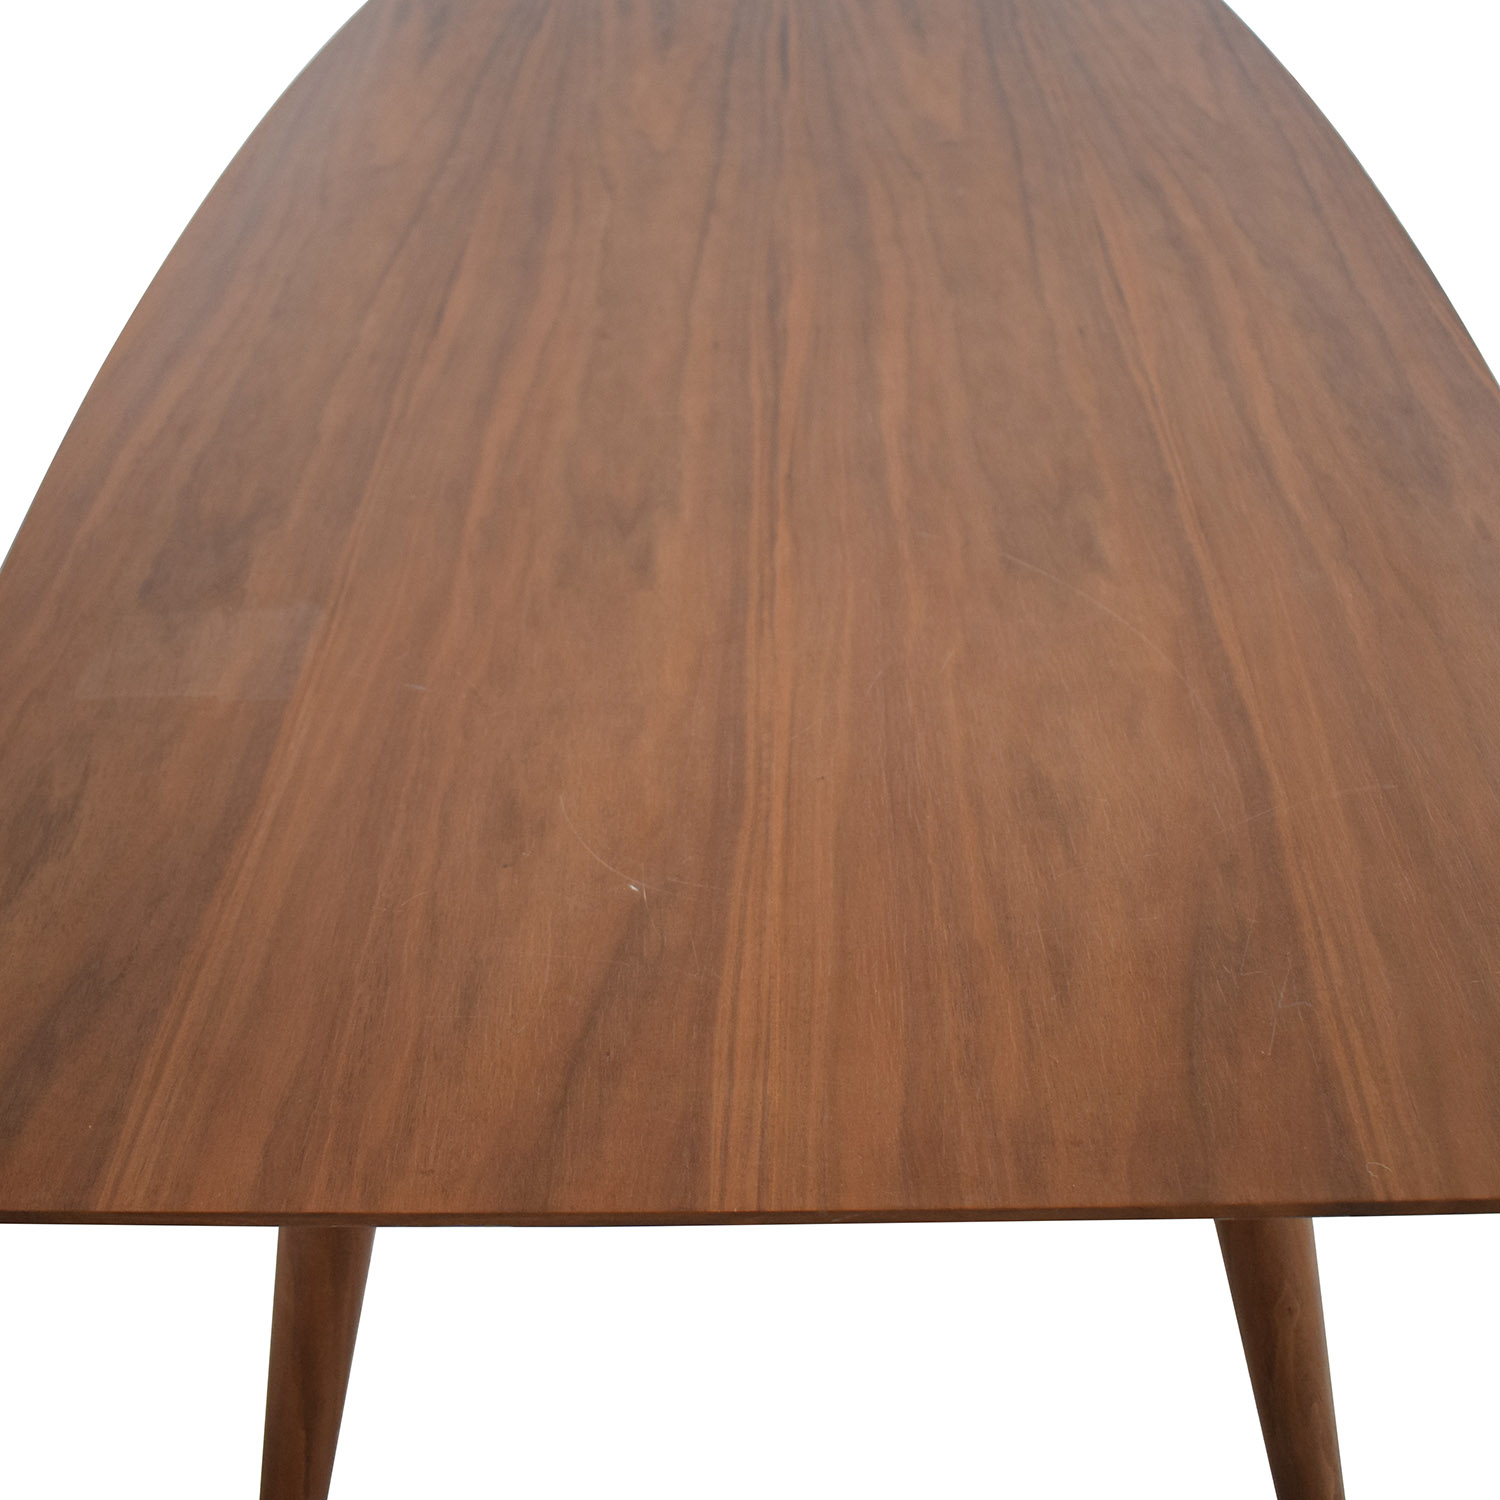 Eurø Style Euro Style Mid Century Dining Table for sale